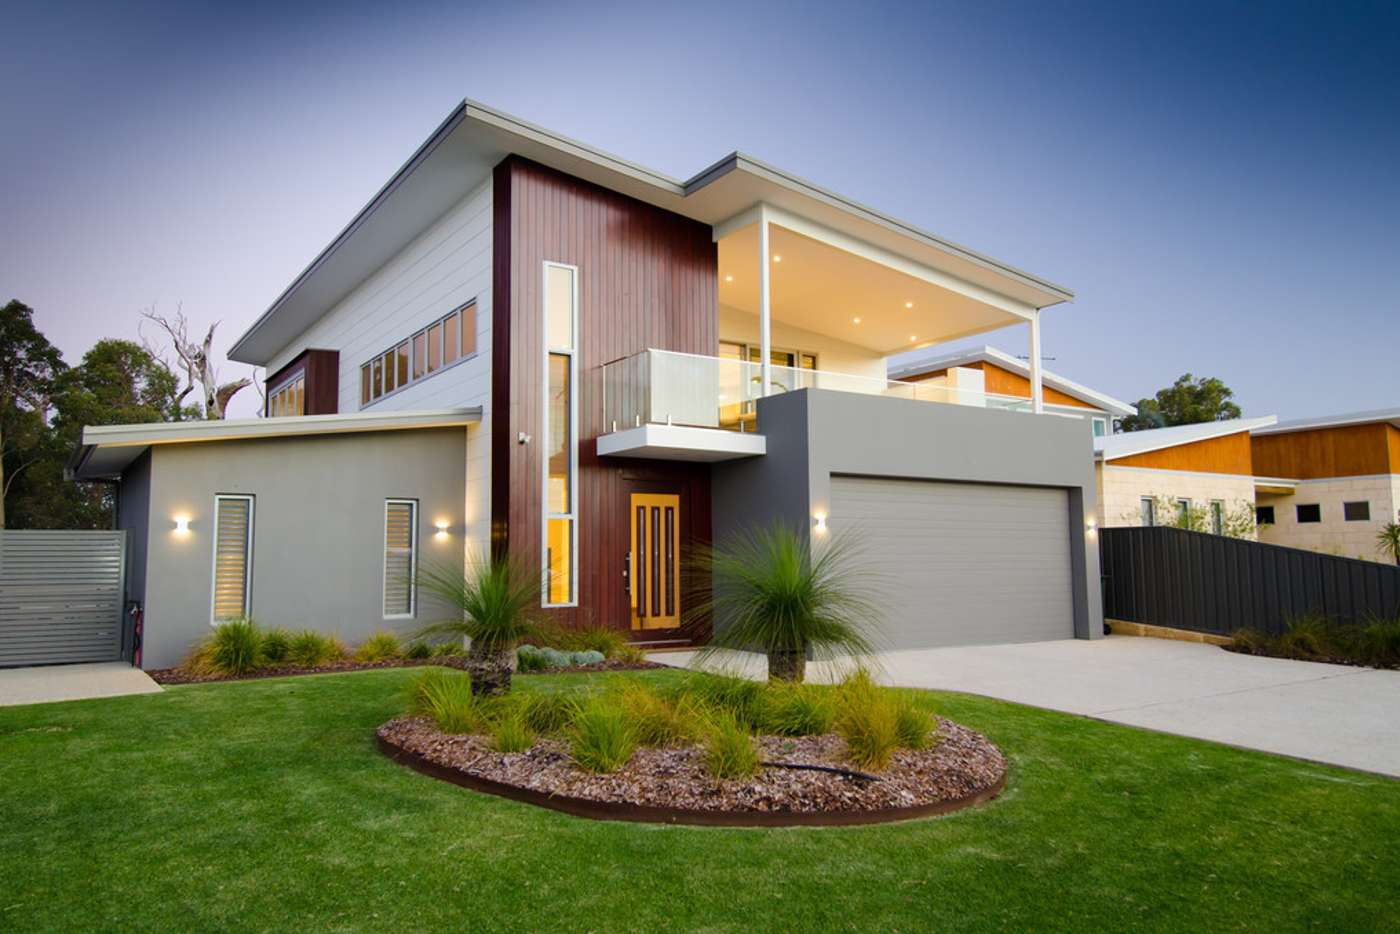 Main view of Homely house listing, 3 Hennessey Loop, Dunsborough WA 6281